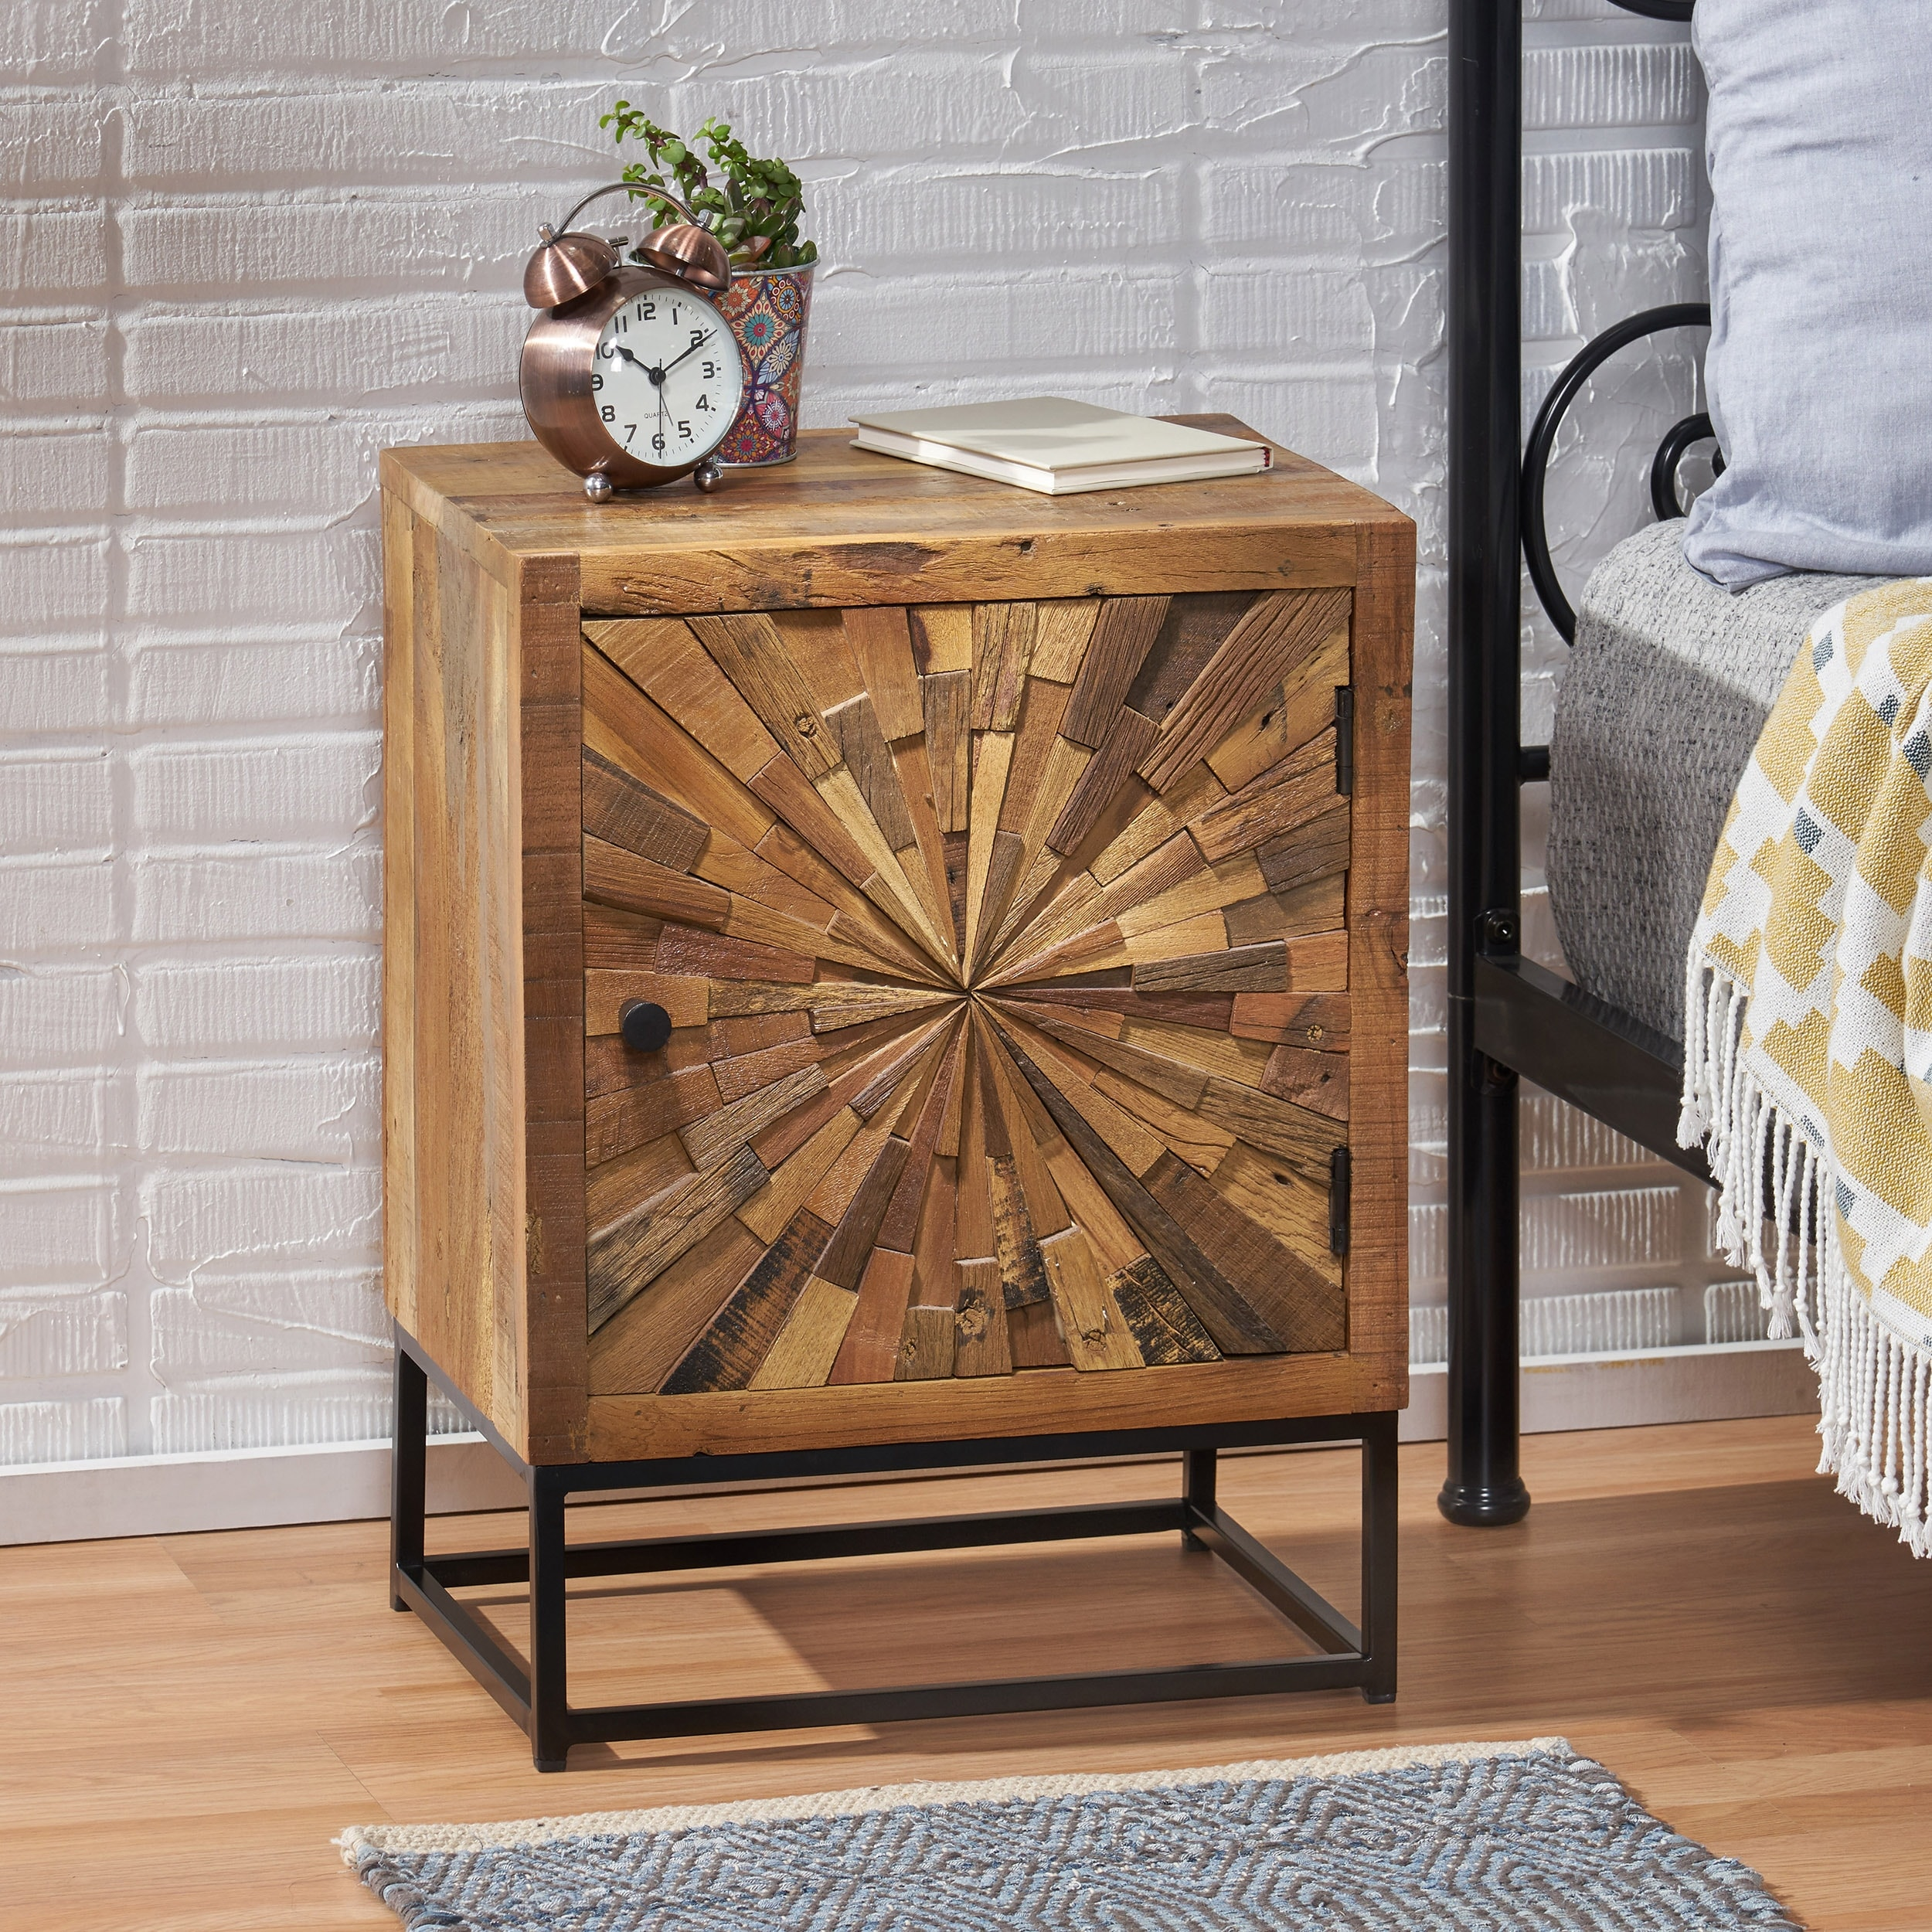 Orem Boho Wooden Night Stand By Christopher Knight Home Overstock 31318225